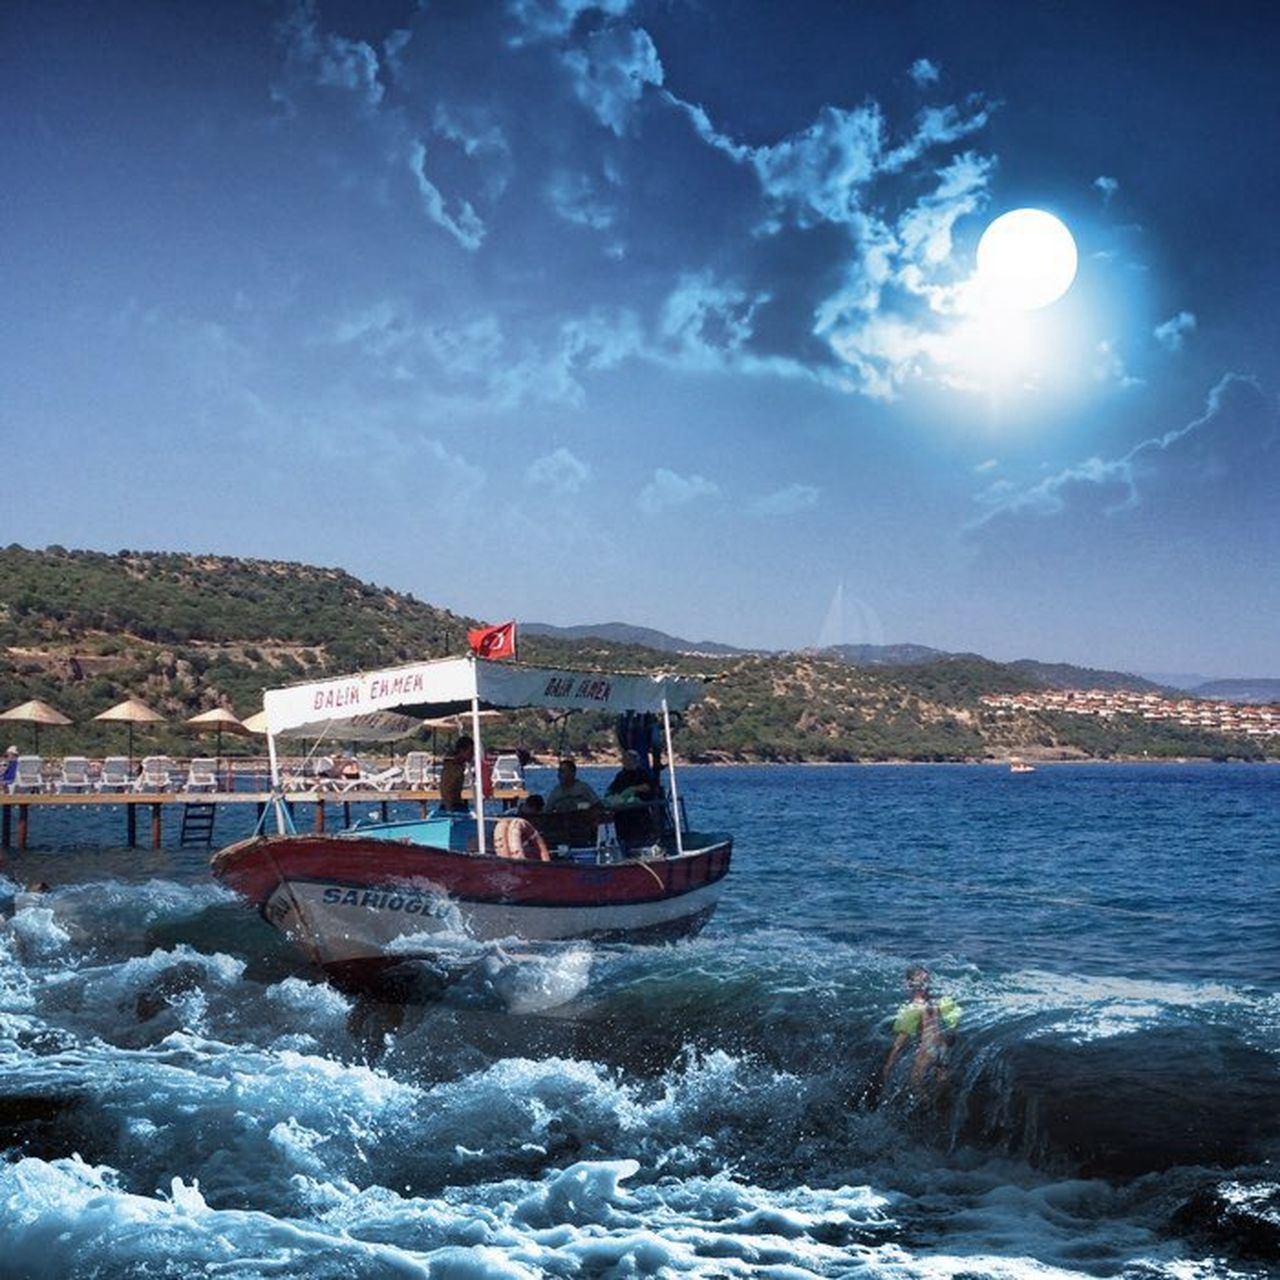 transportation, nautical vessel, sky, water, real people, day, outdoors, nature, men, mountain, sea, architecture, people